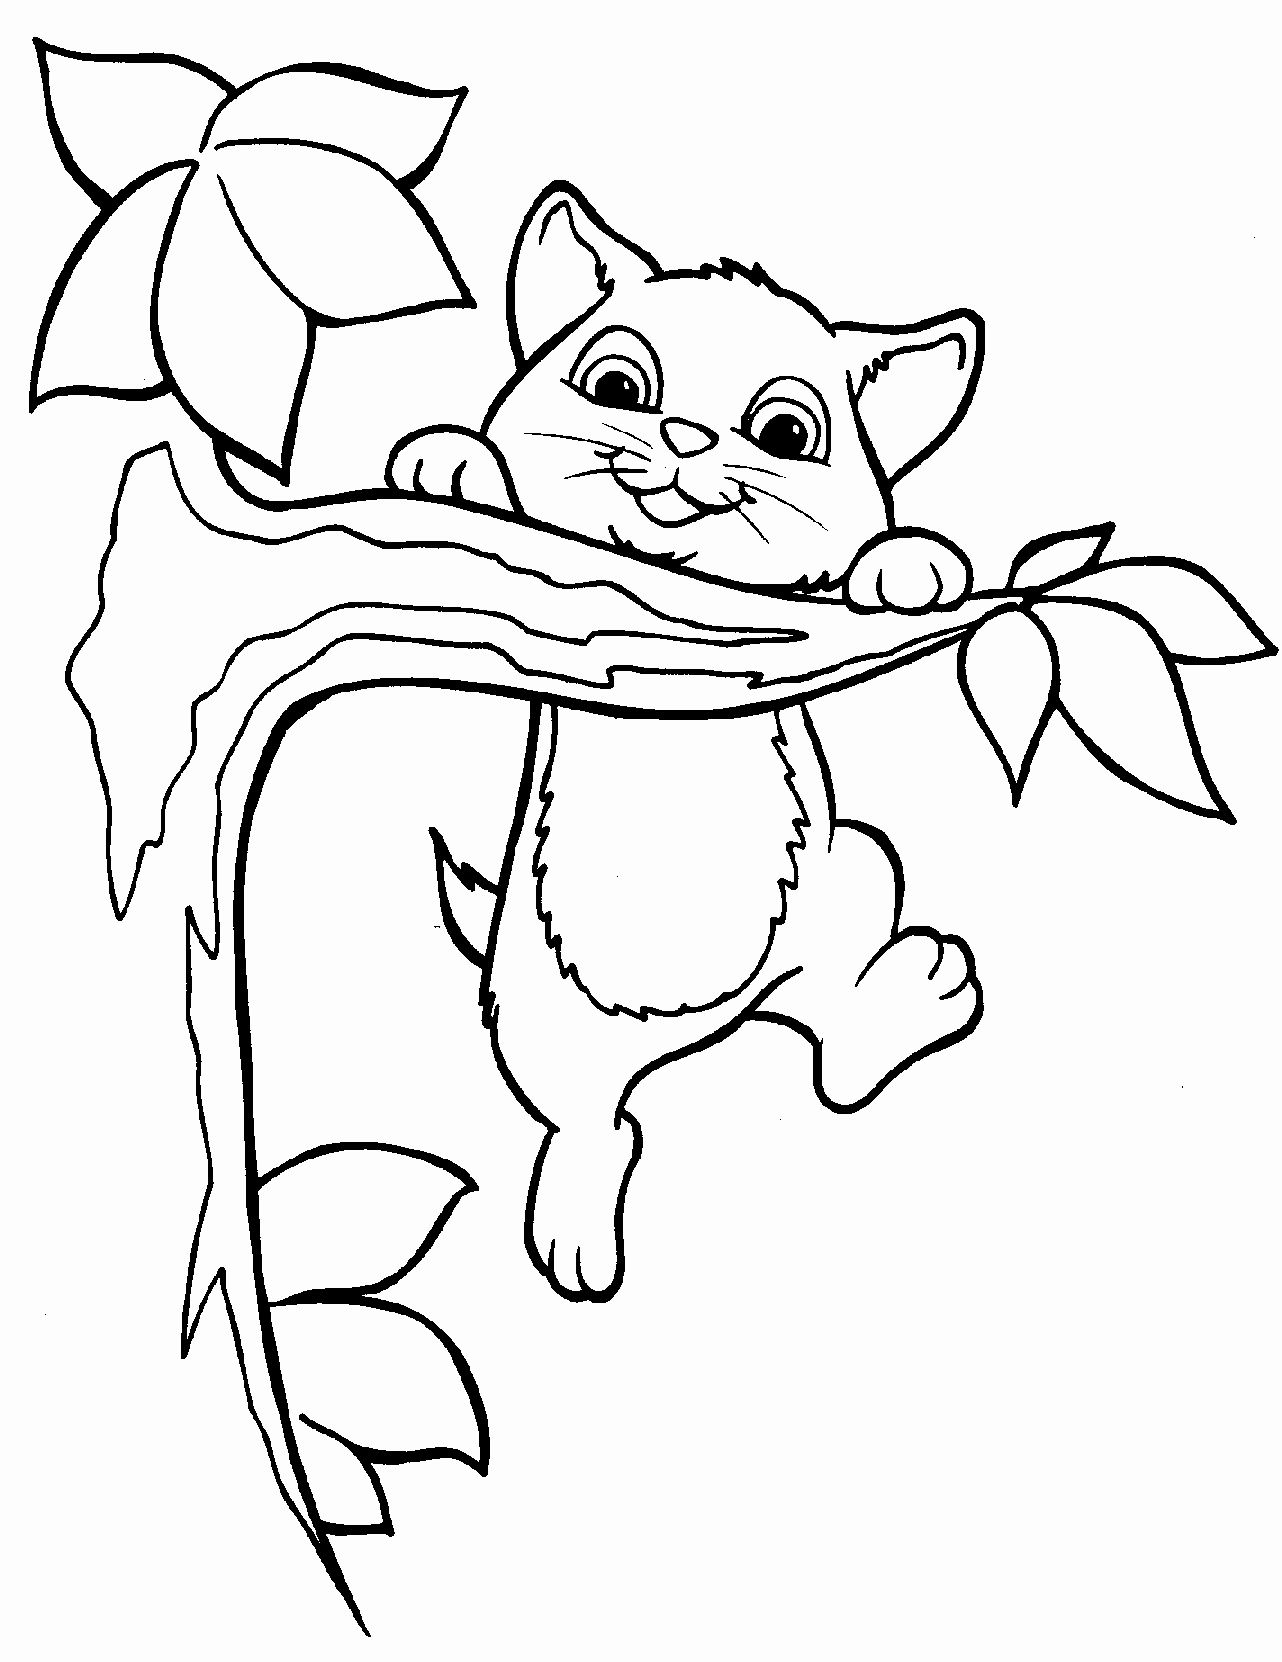 Print Lampo Rock 44 Cats Coloring Pages Trend In 2021 Cat Coloring Page Free Coloring Pages Coloring Pages